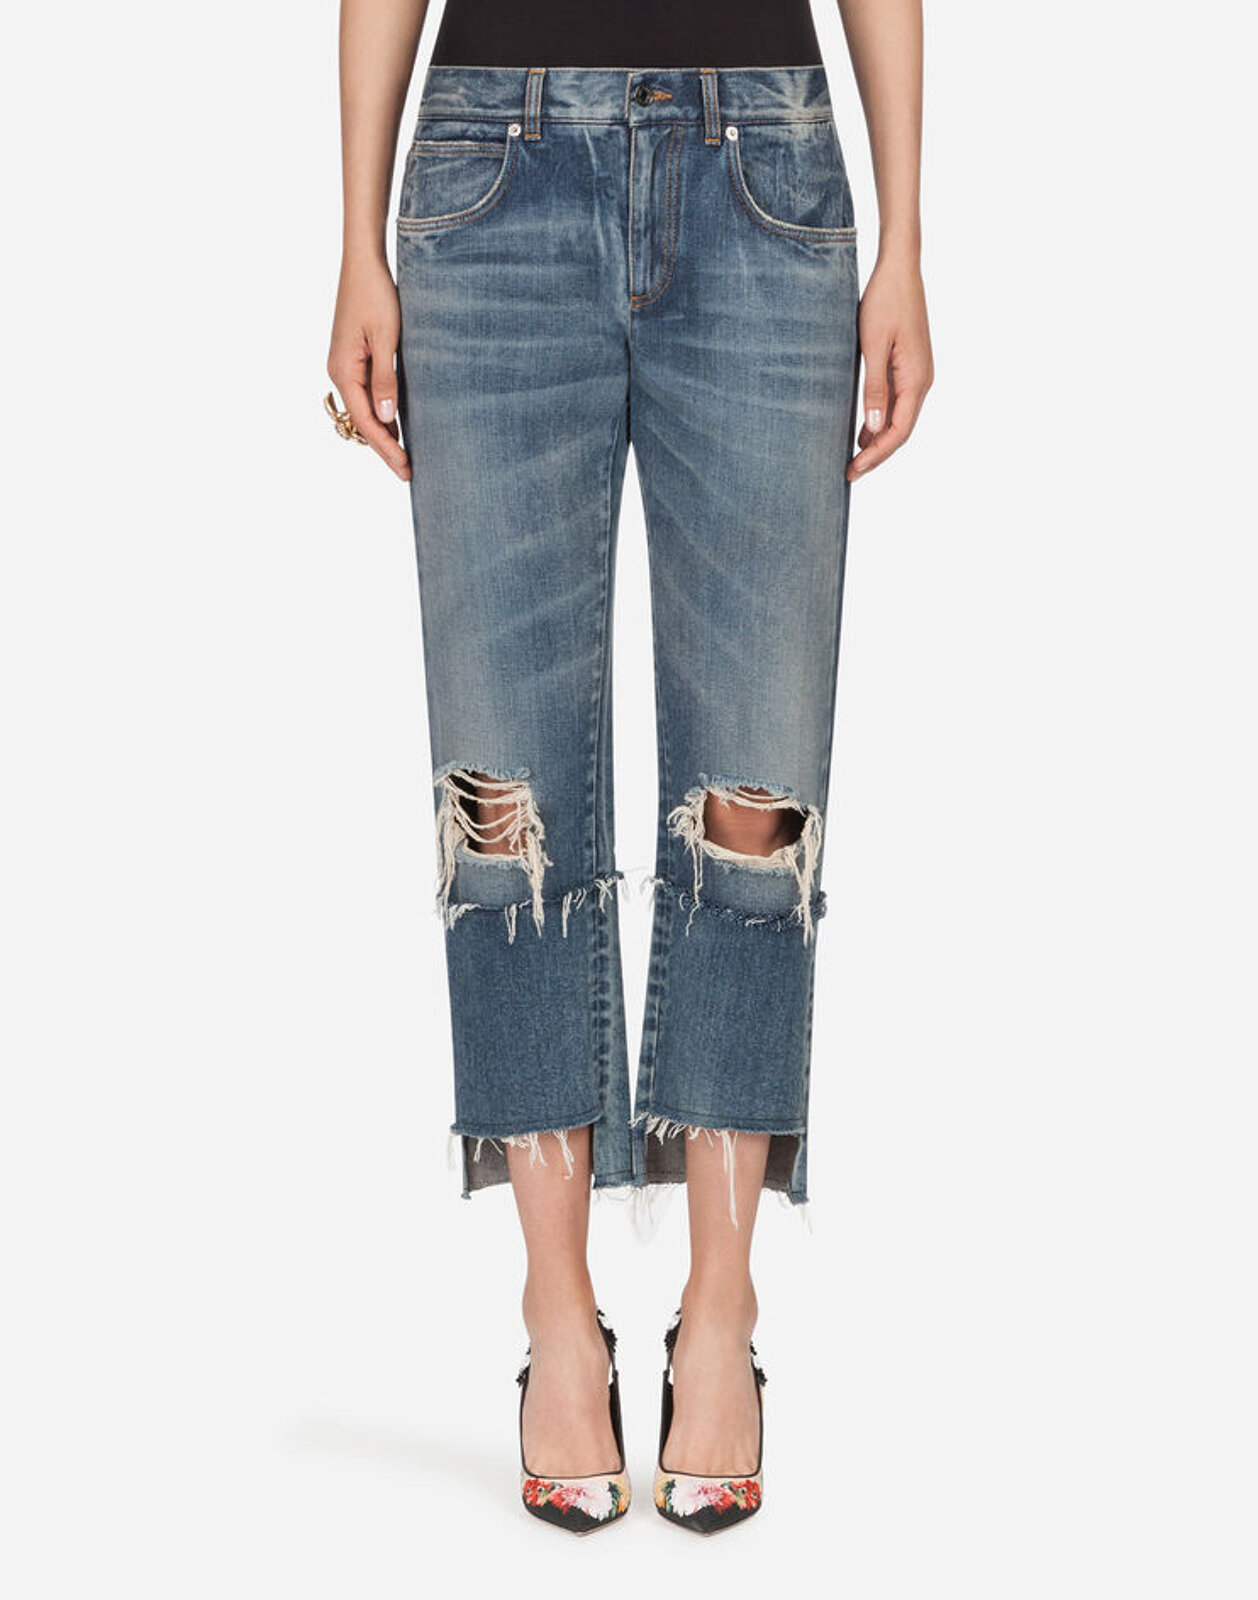 Jeans In Denim - Dolce & Gabbana